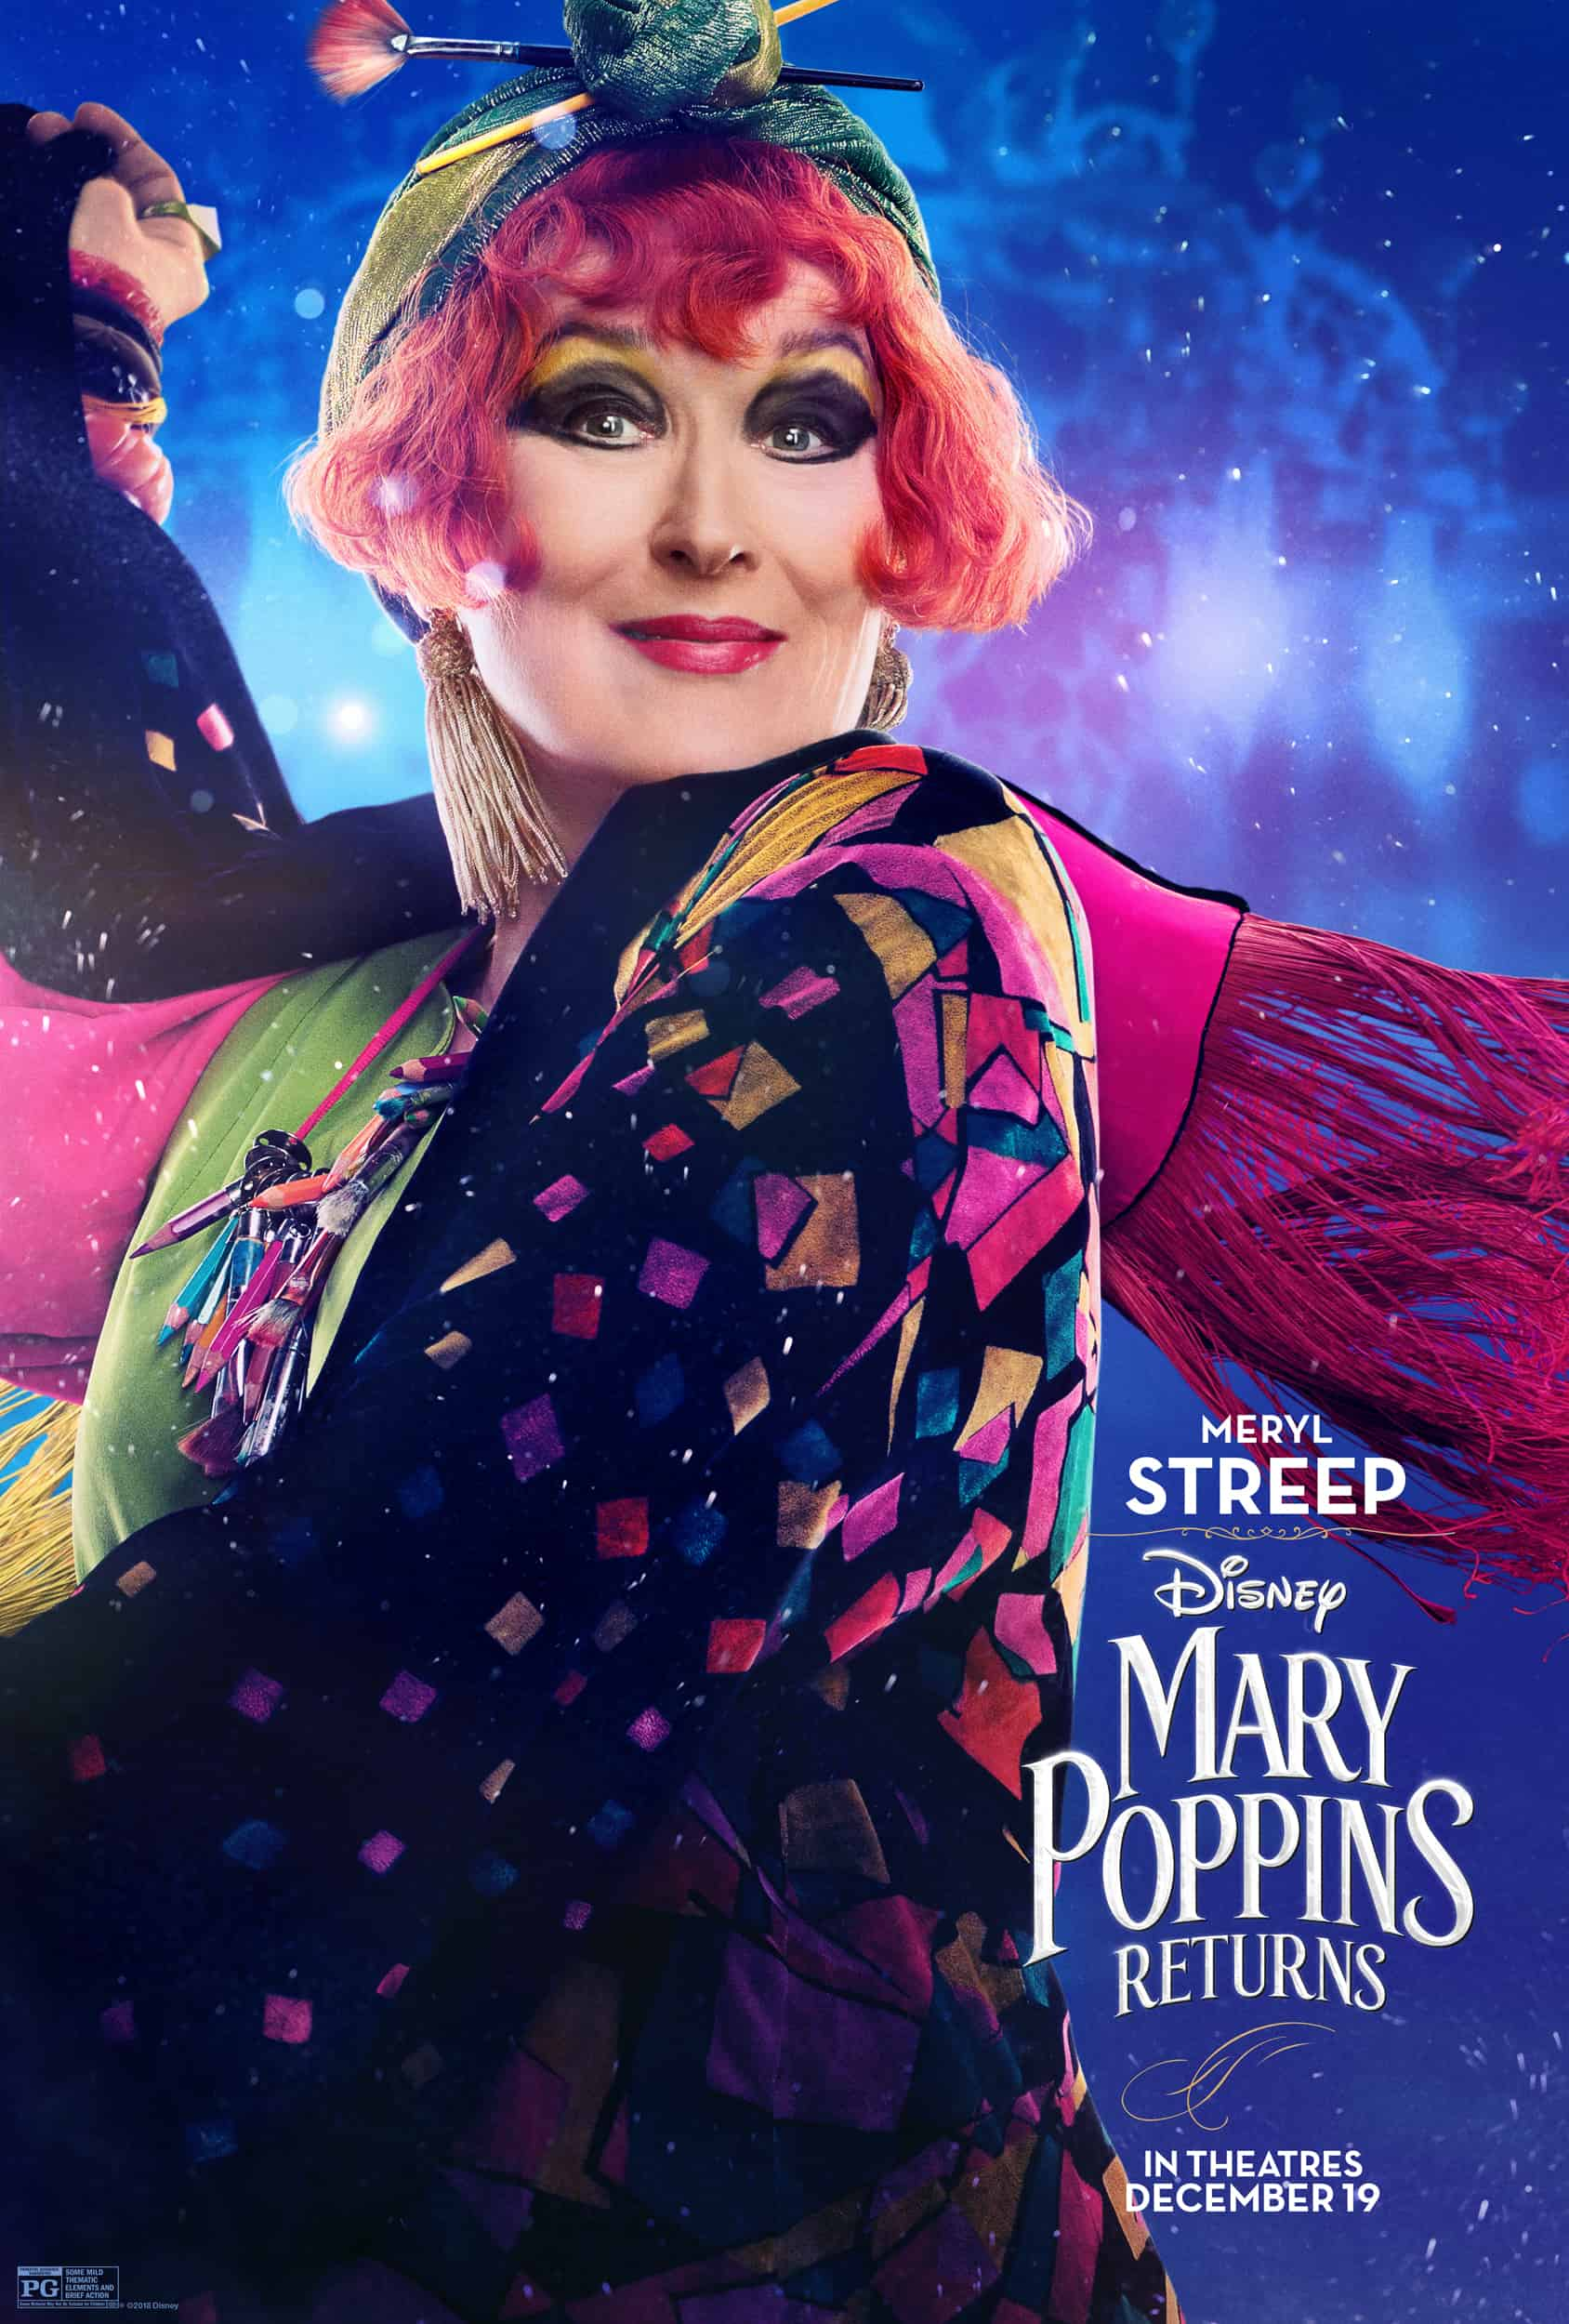 Mary Poppins Returns in theaters on December 19th #MaryPoppinsReturns